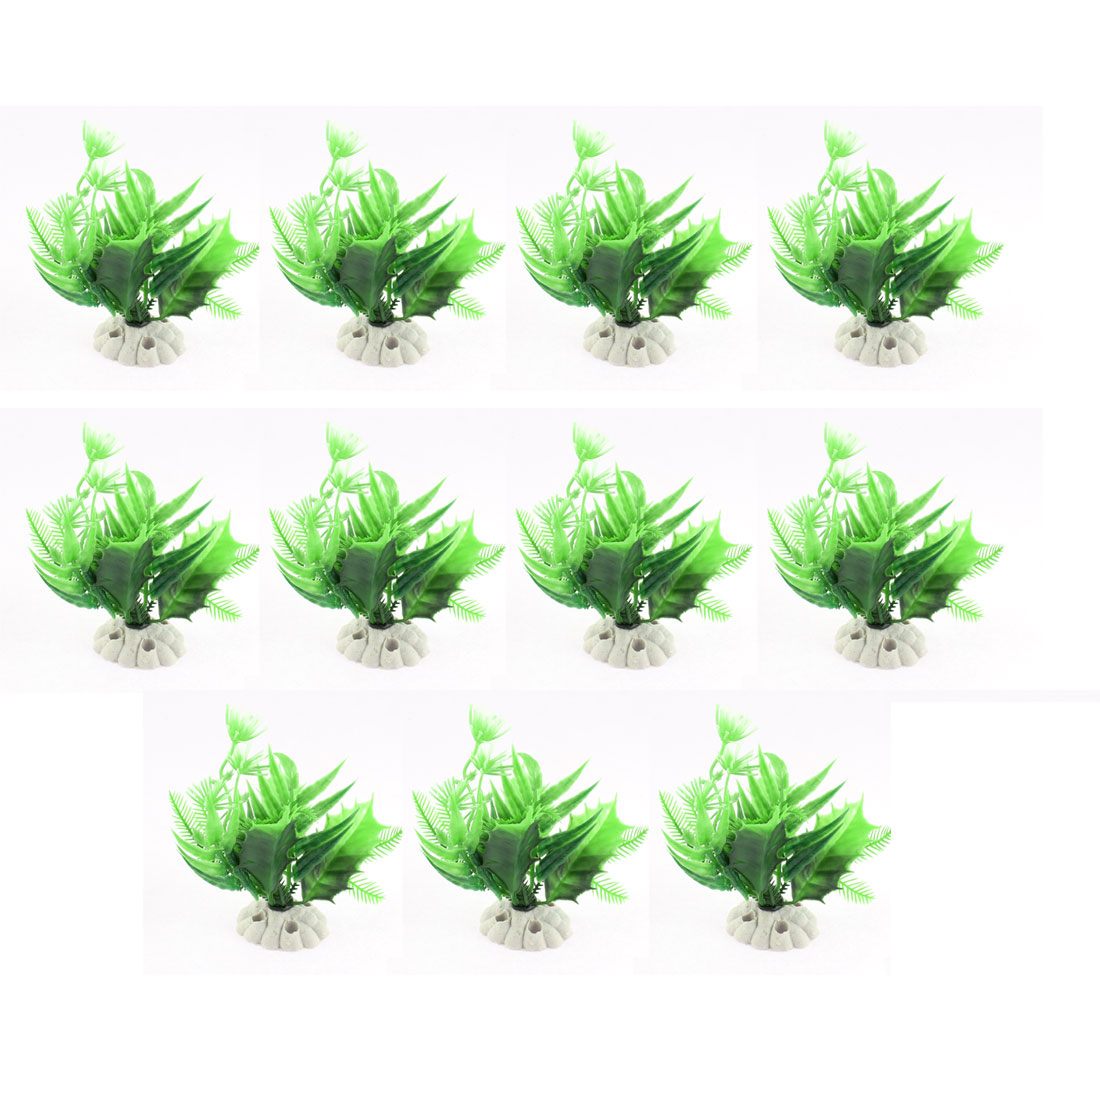 Aquarium Plastic Artificial Landscaping Aquatic Grass Plant Decor 11PCS